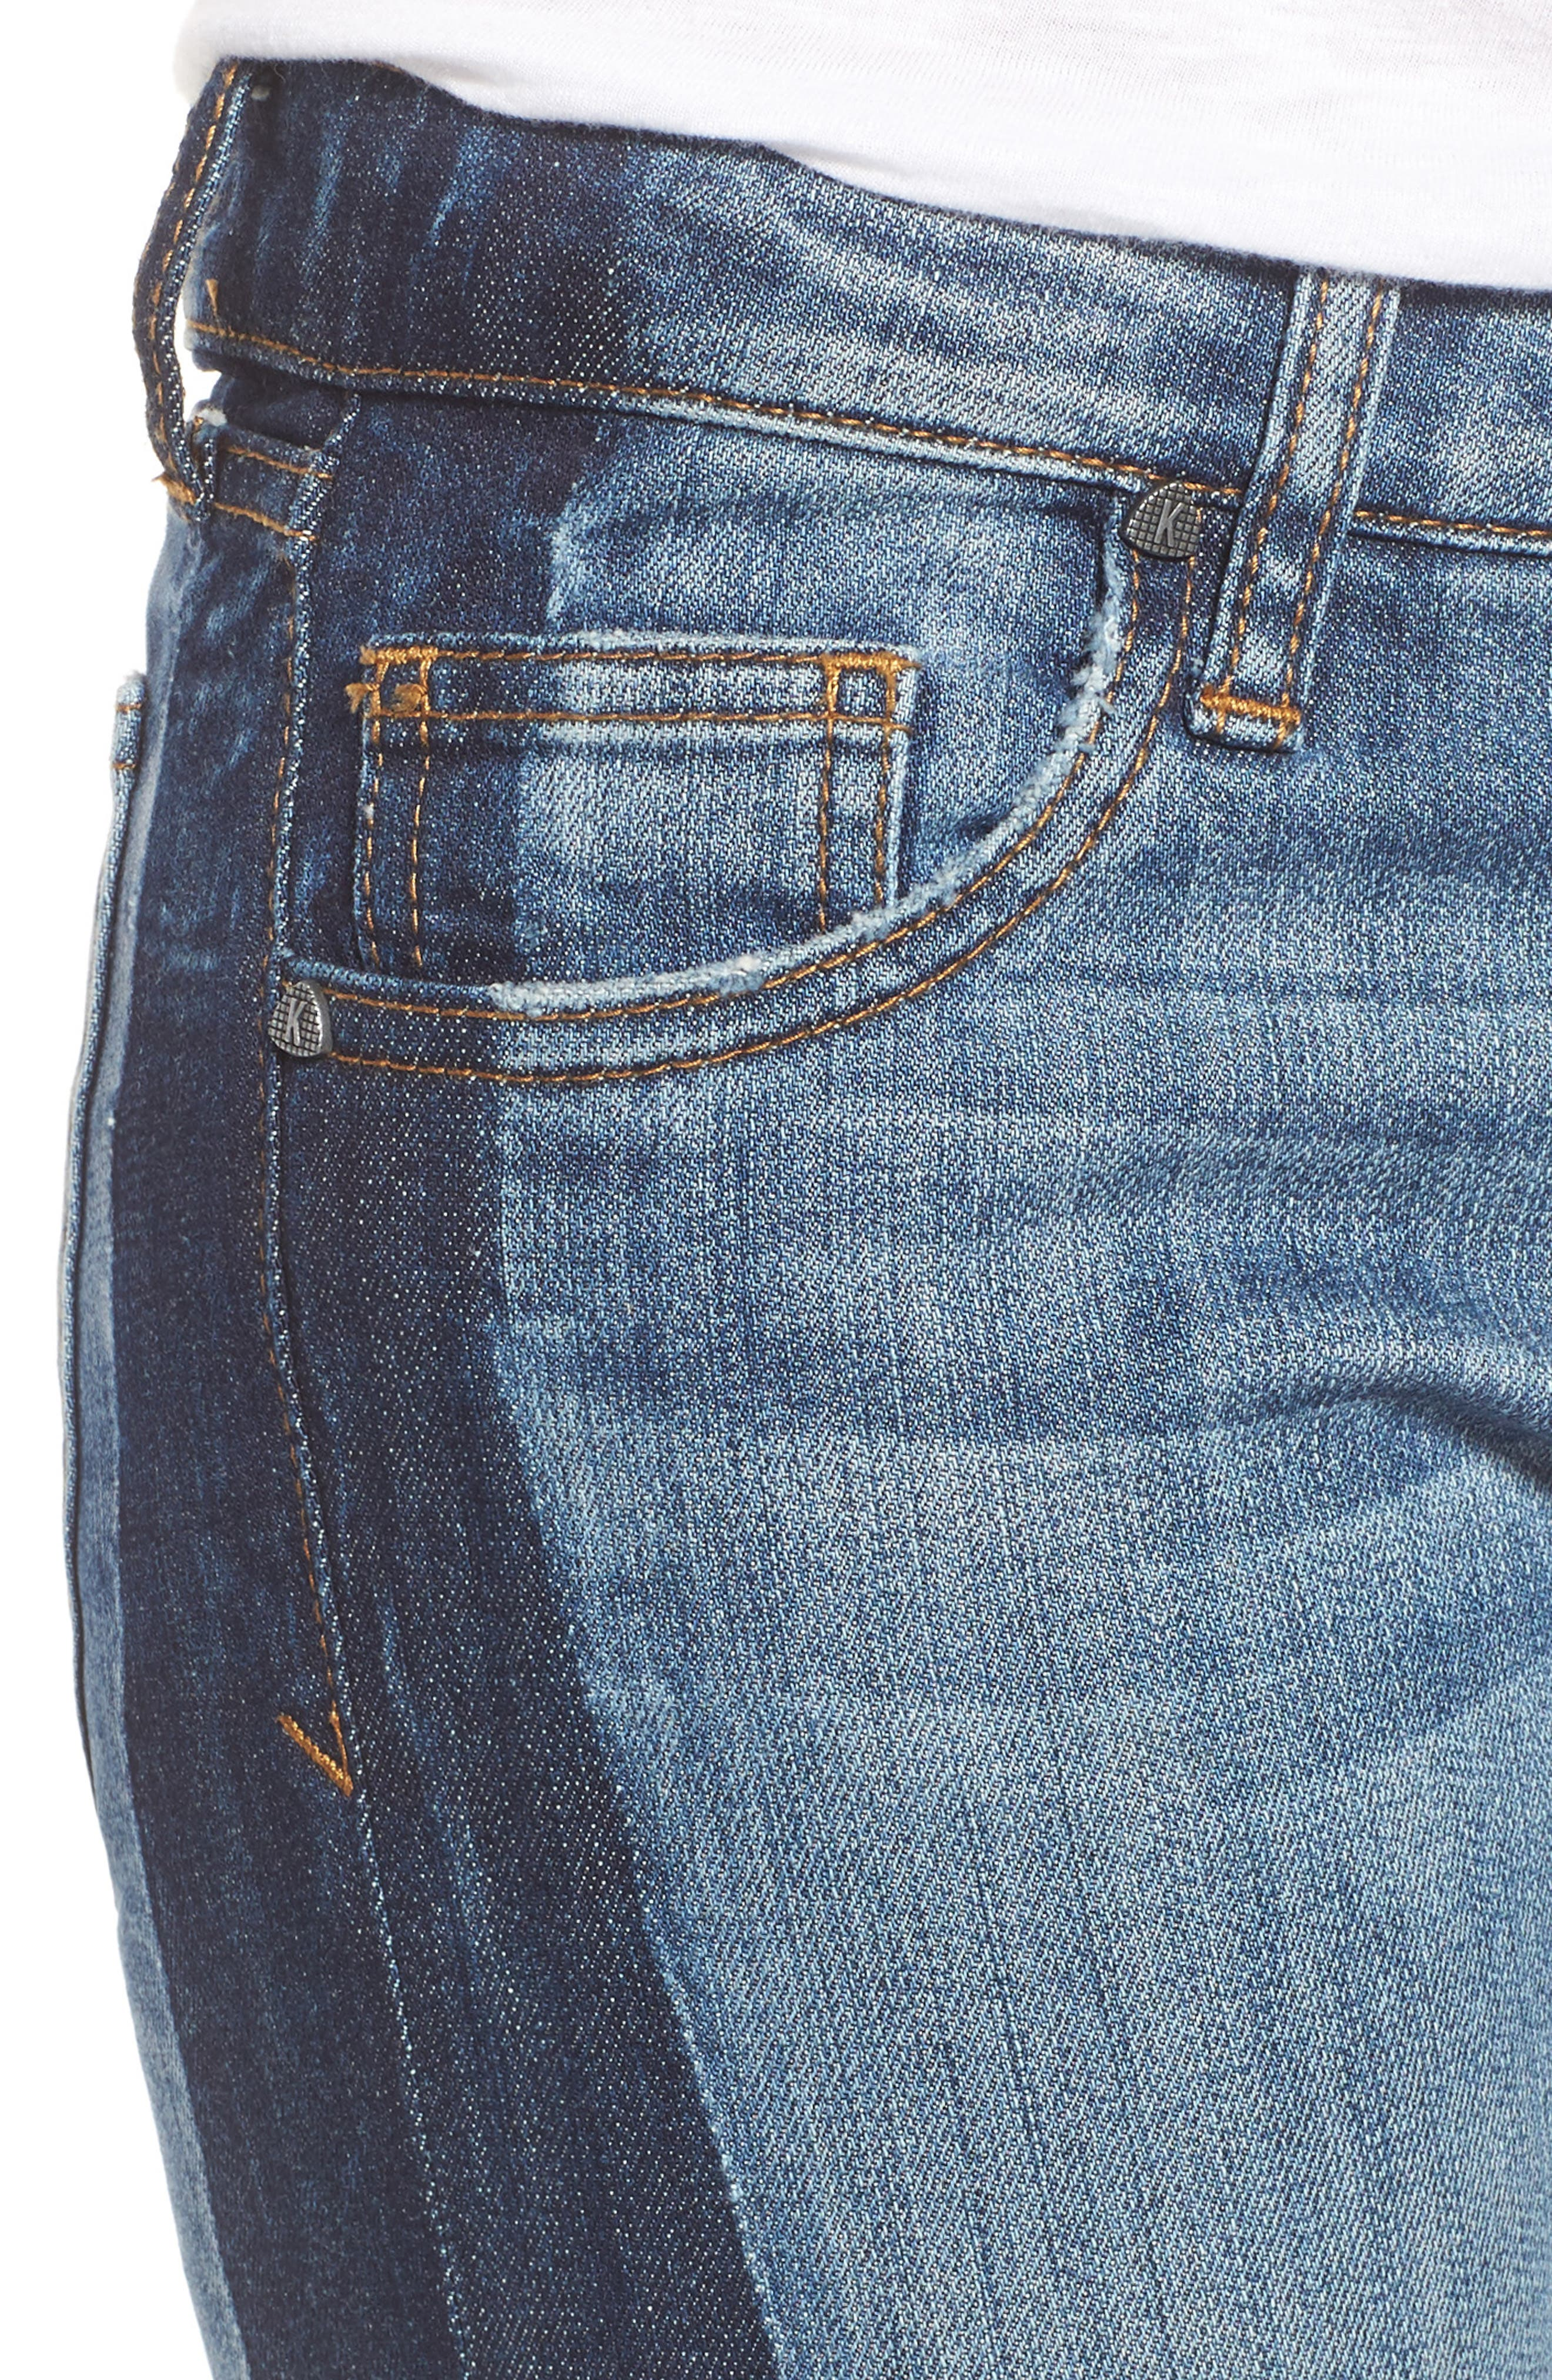 Reese Patch Jeans,                             Alternate thumbnail 4, color,                             460